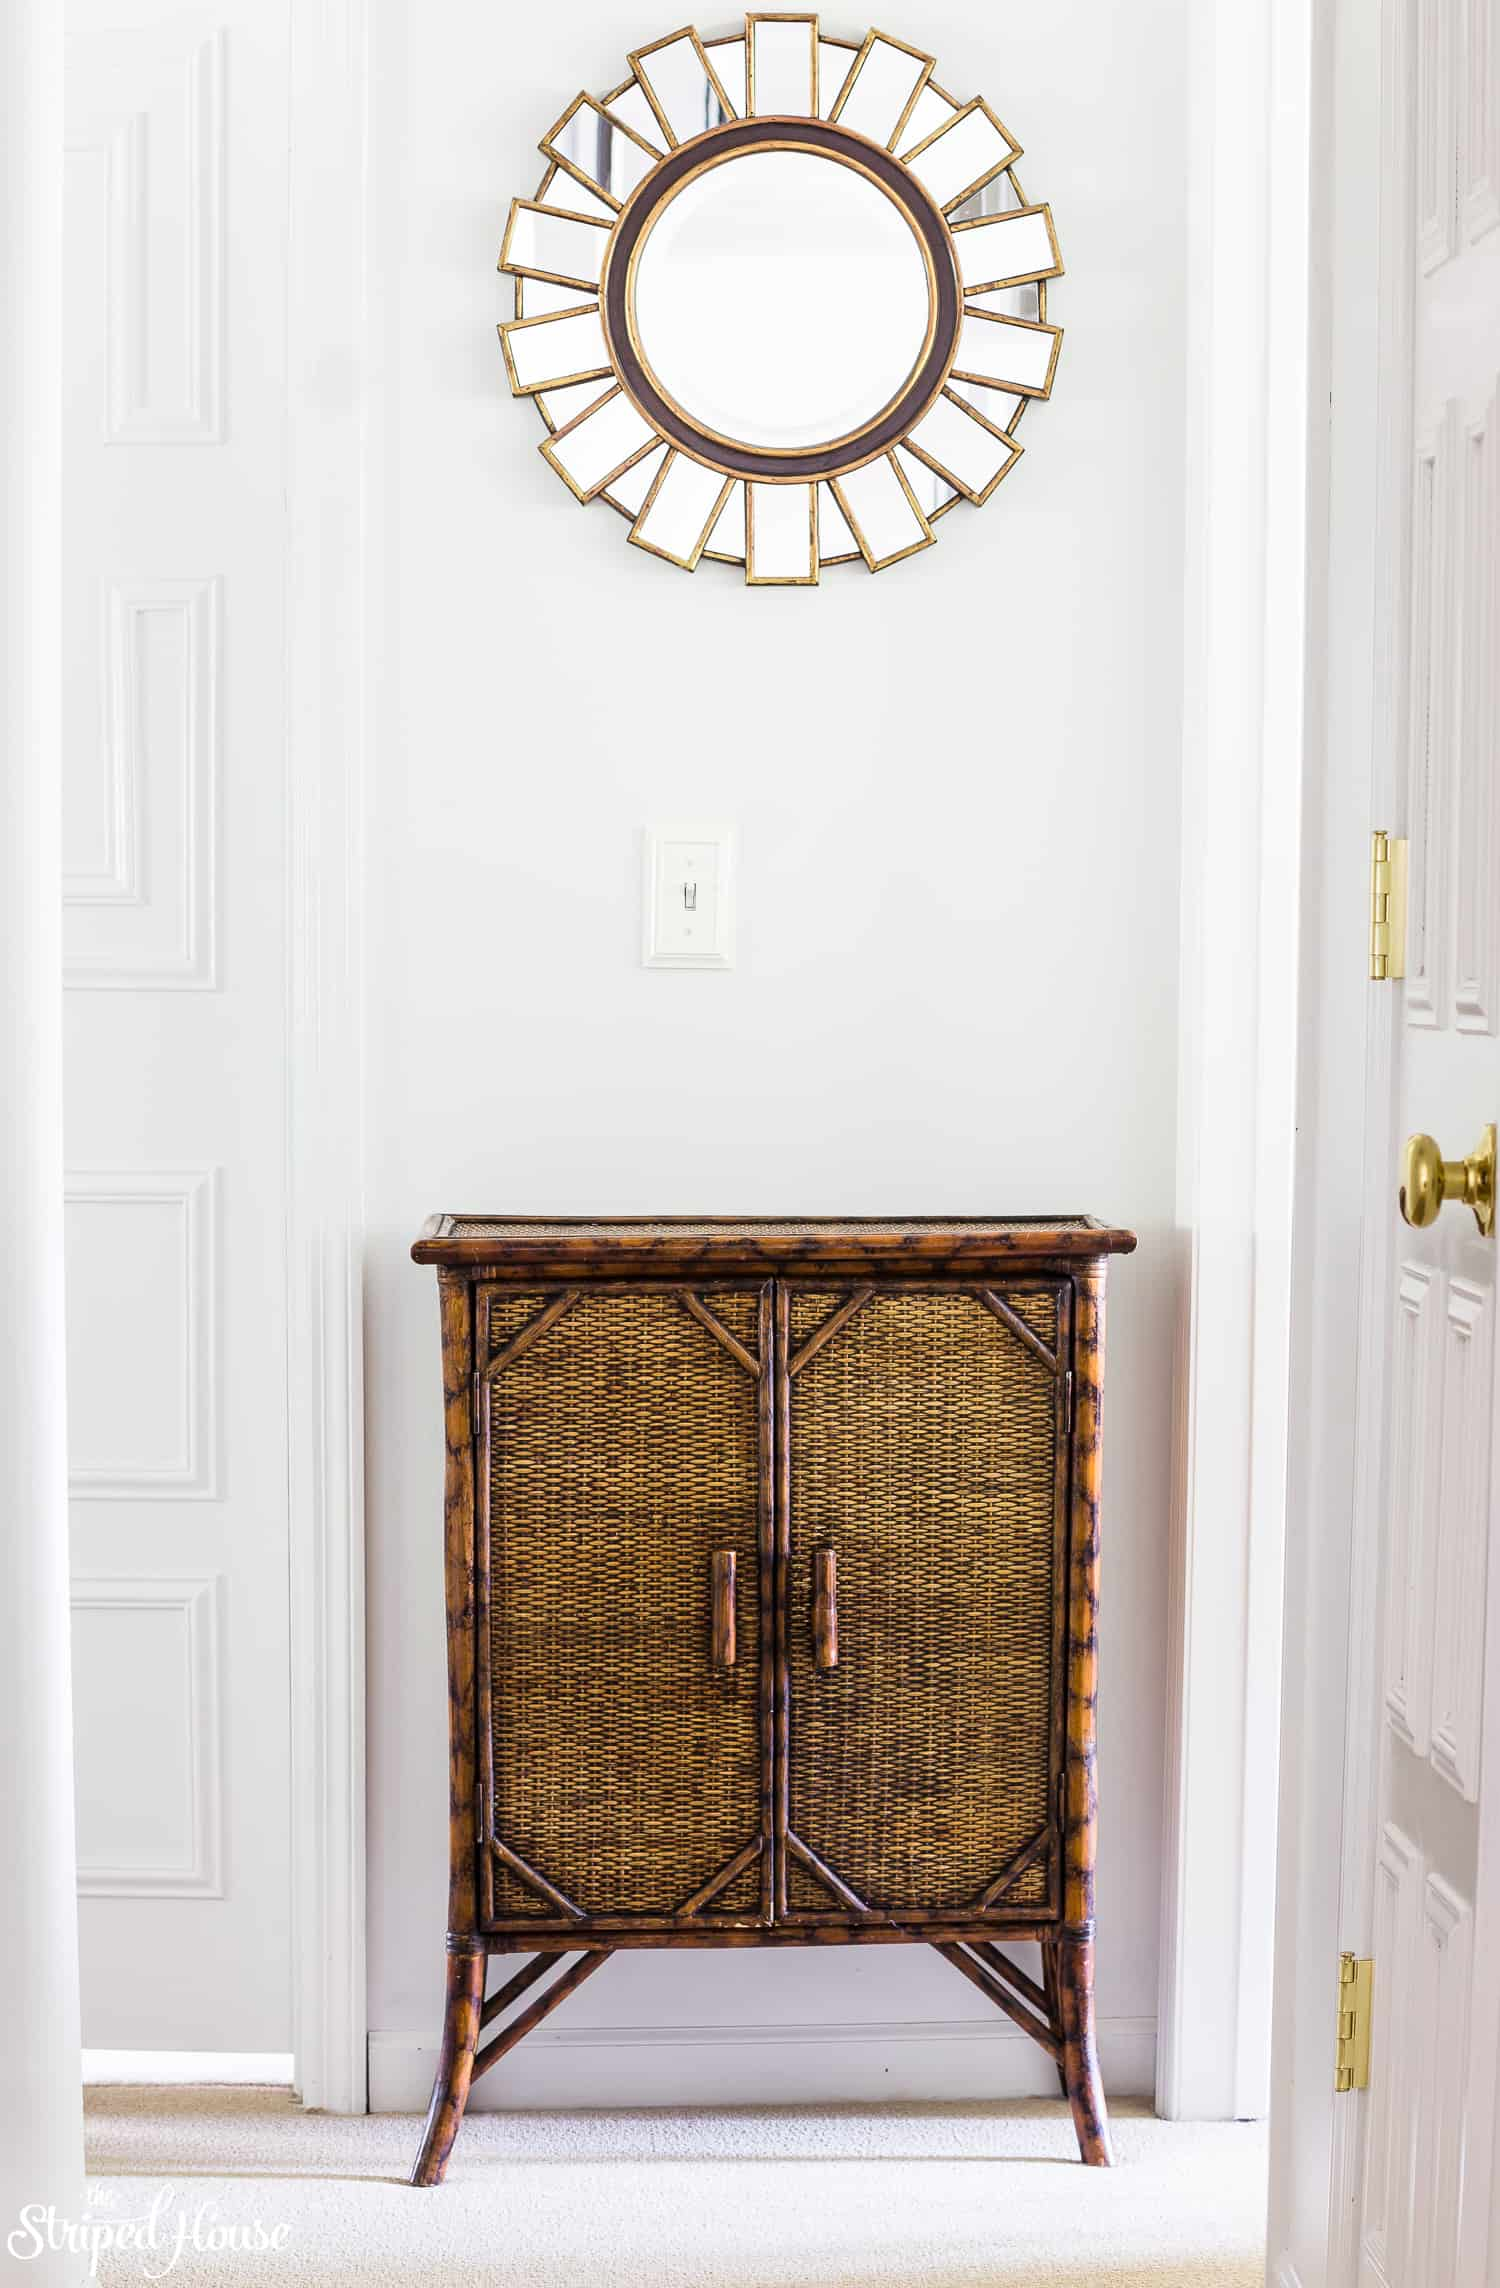 White neotraditional hallway with thrifted decor, bamboo console and gold starburst mirror.